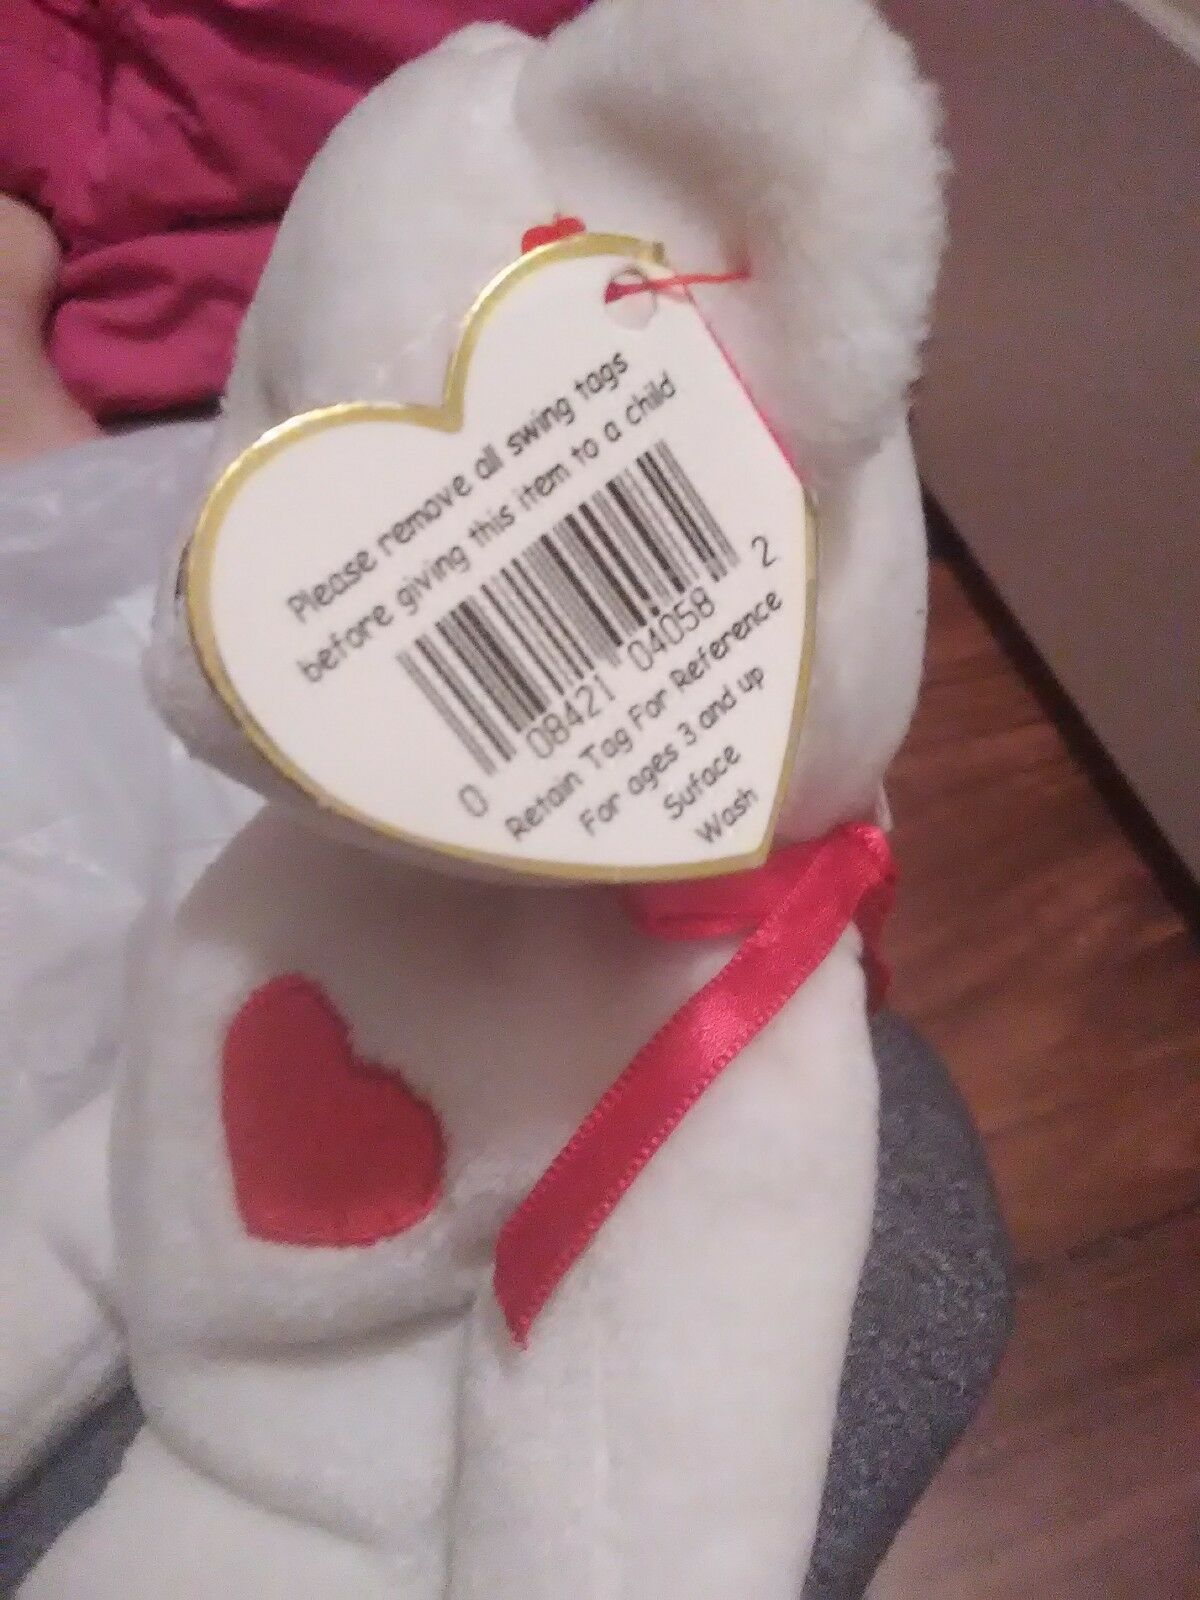 Extremely Rare   VALENTINO 1993 1994 TY Beanie Baby misspelled errors...tush tag